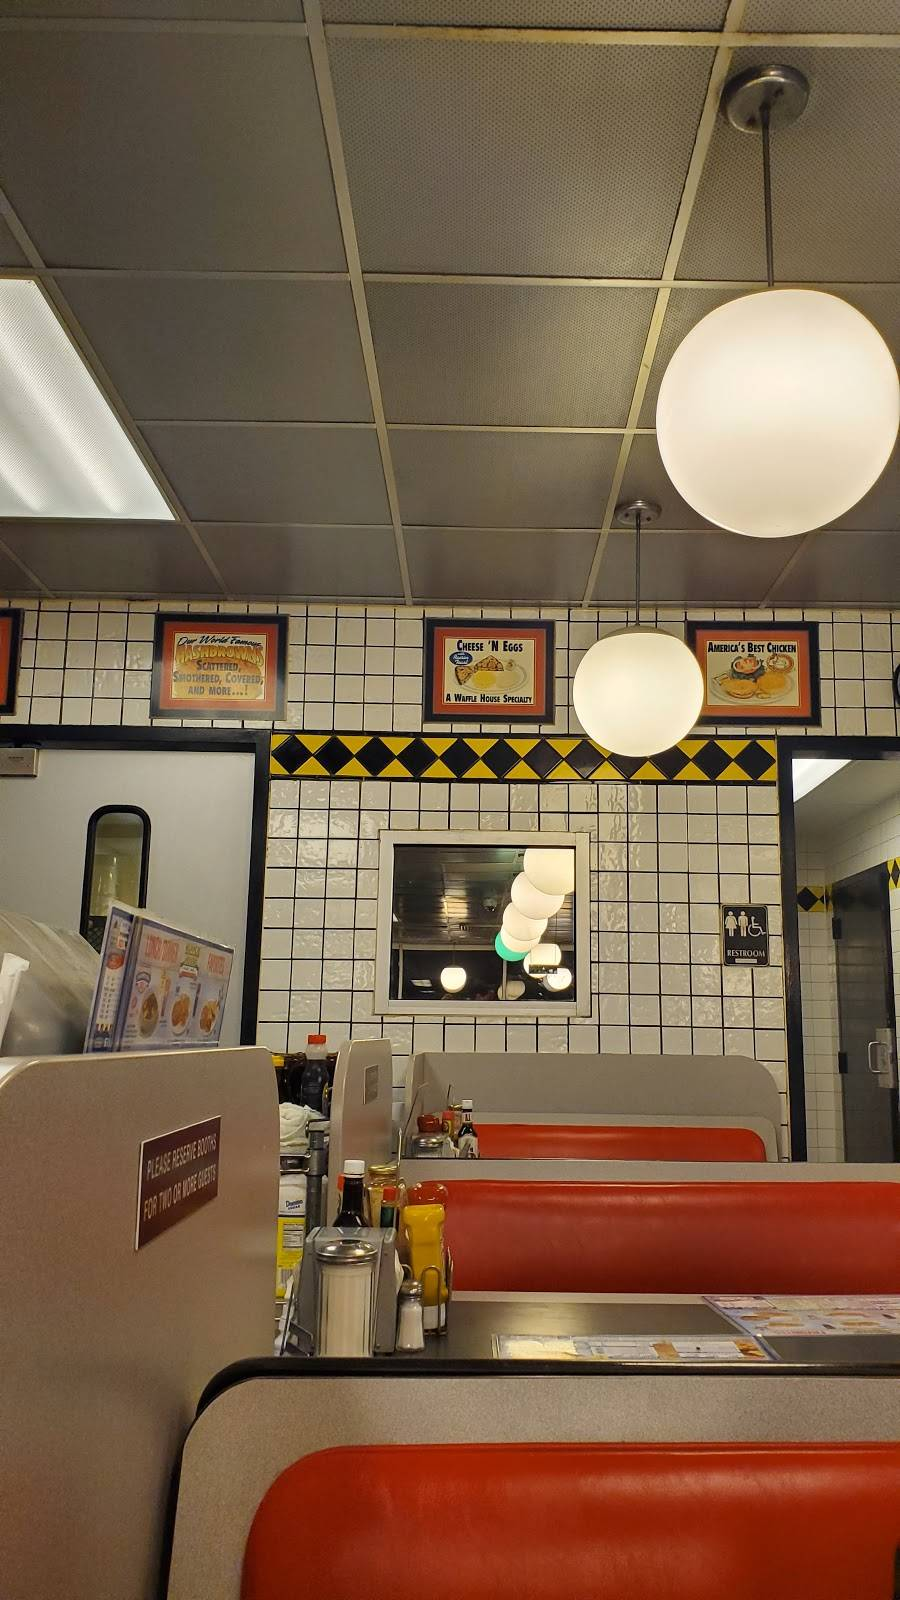 Waffle House | meal takeaway | 3090 US 49, Florence, MS 39073, USA | 6018458483 OR +1 601-845-8483